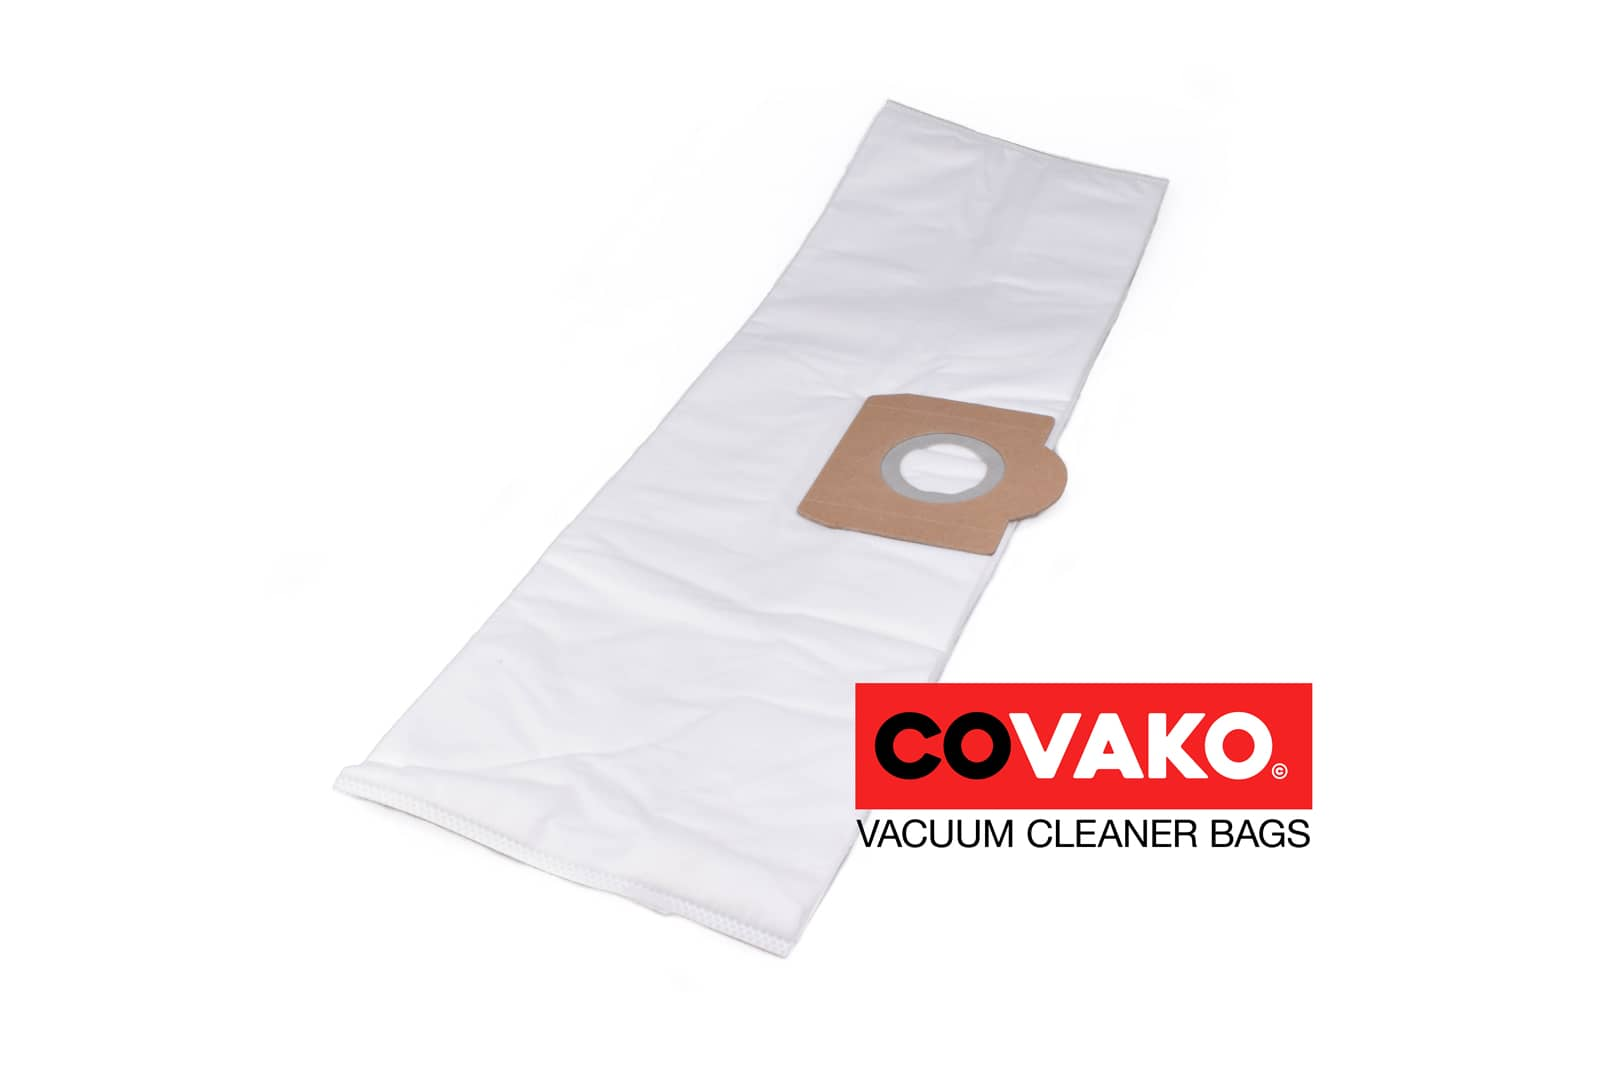 Gansow LP 1/16 Luxe / Synthesis - Gansow vacuum cleaner bags